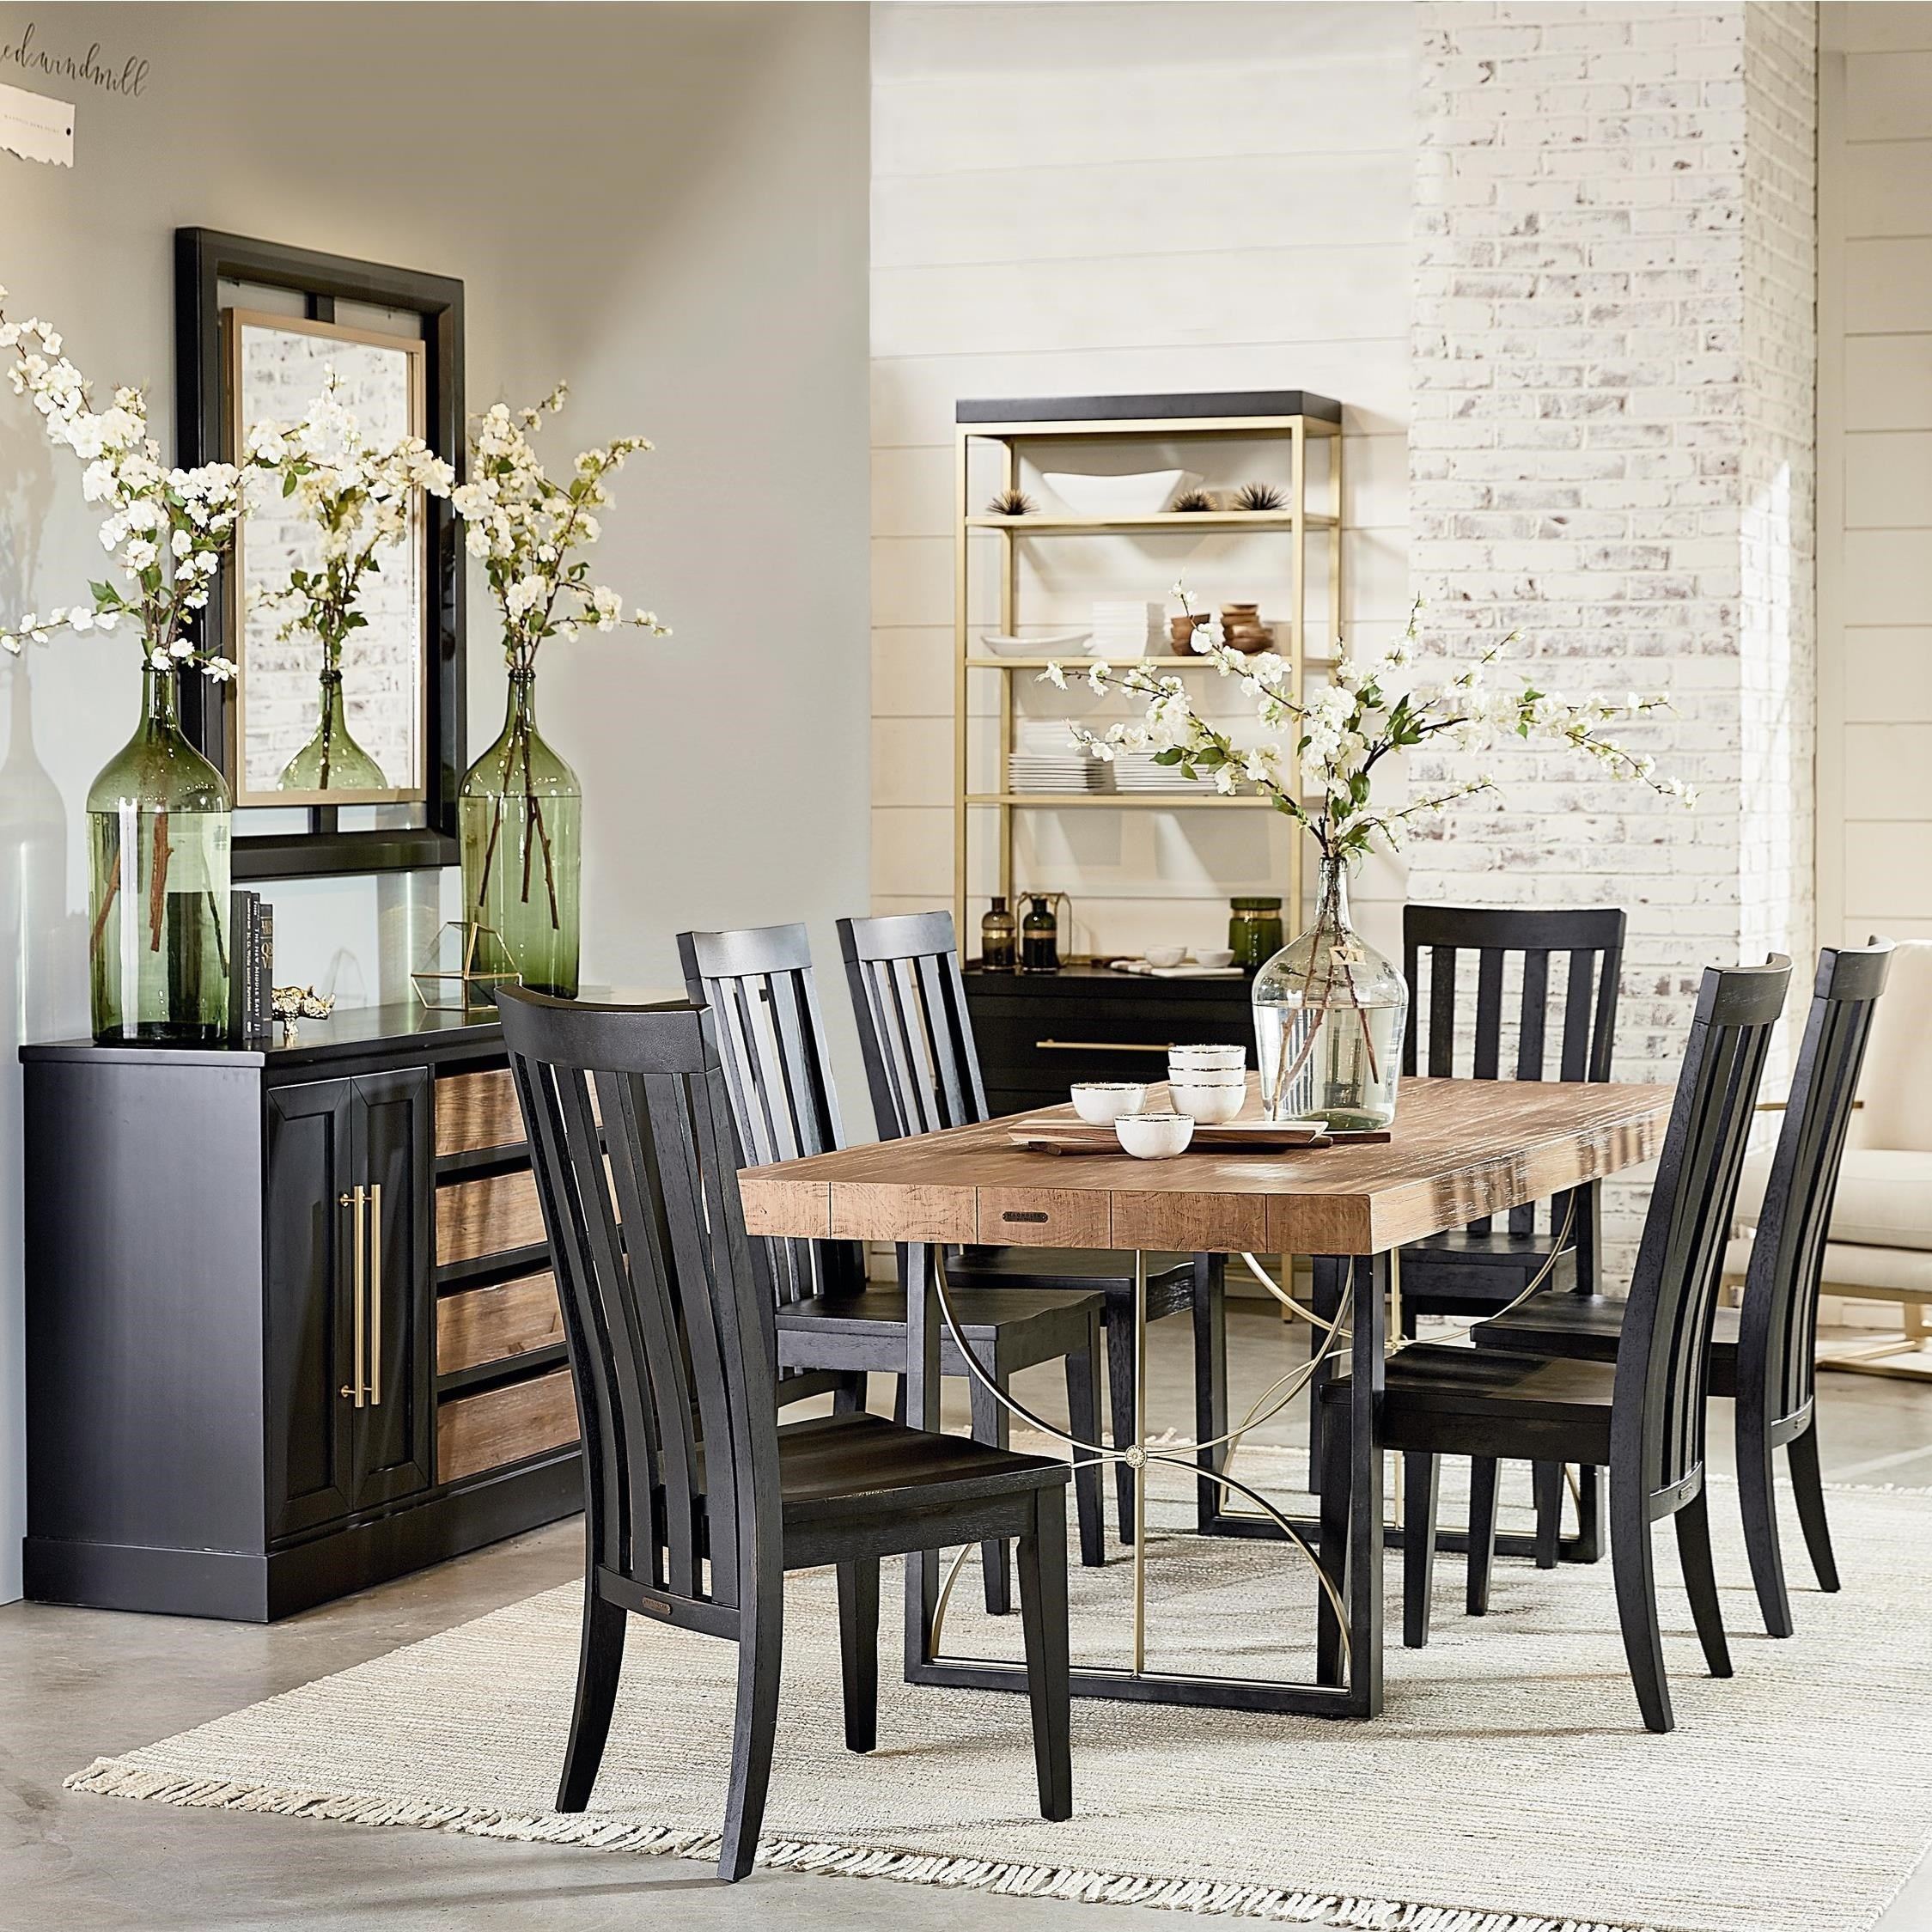 Attractive Magnolia Home By Joanna Gaines Modern6u0027 Dining Room Group ...